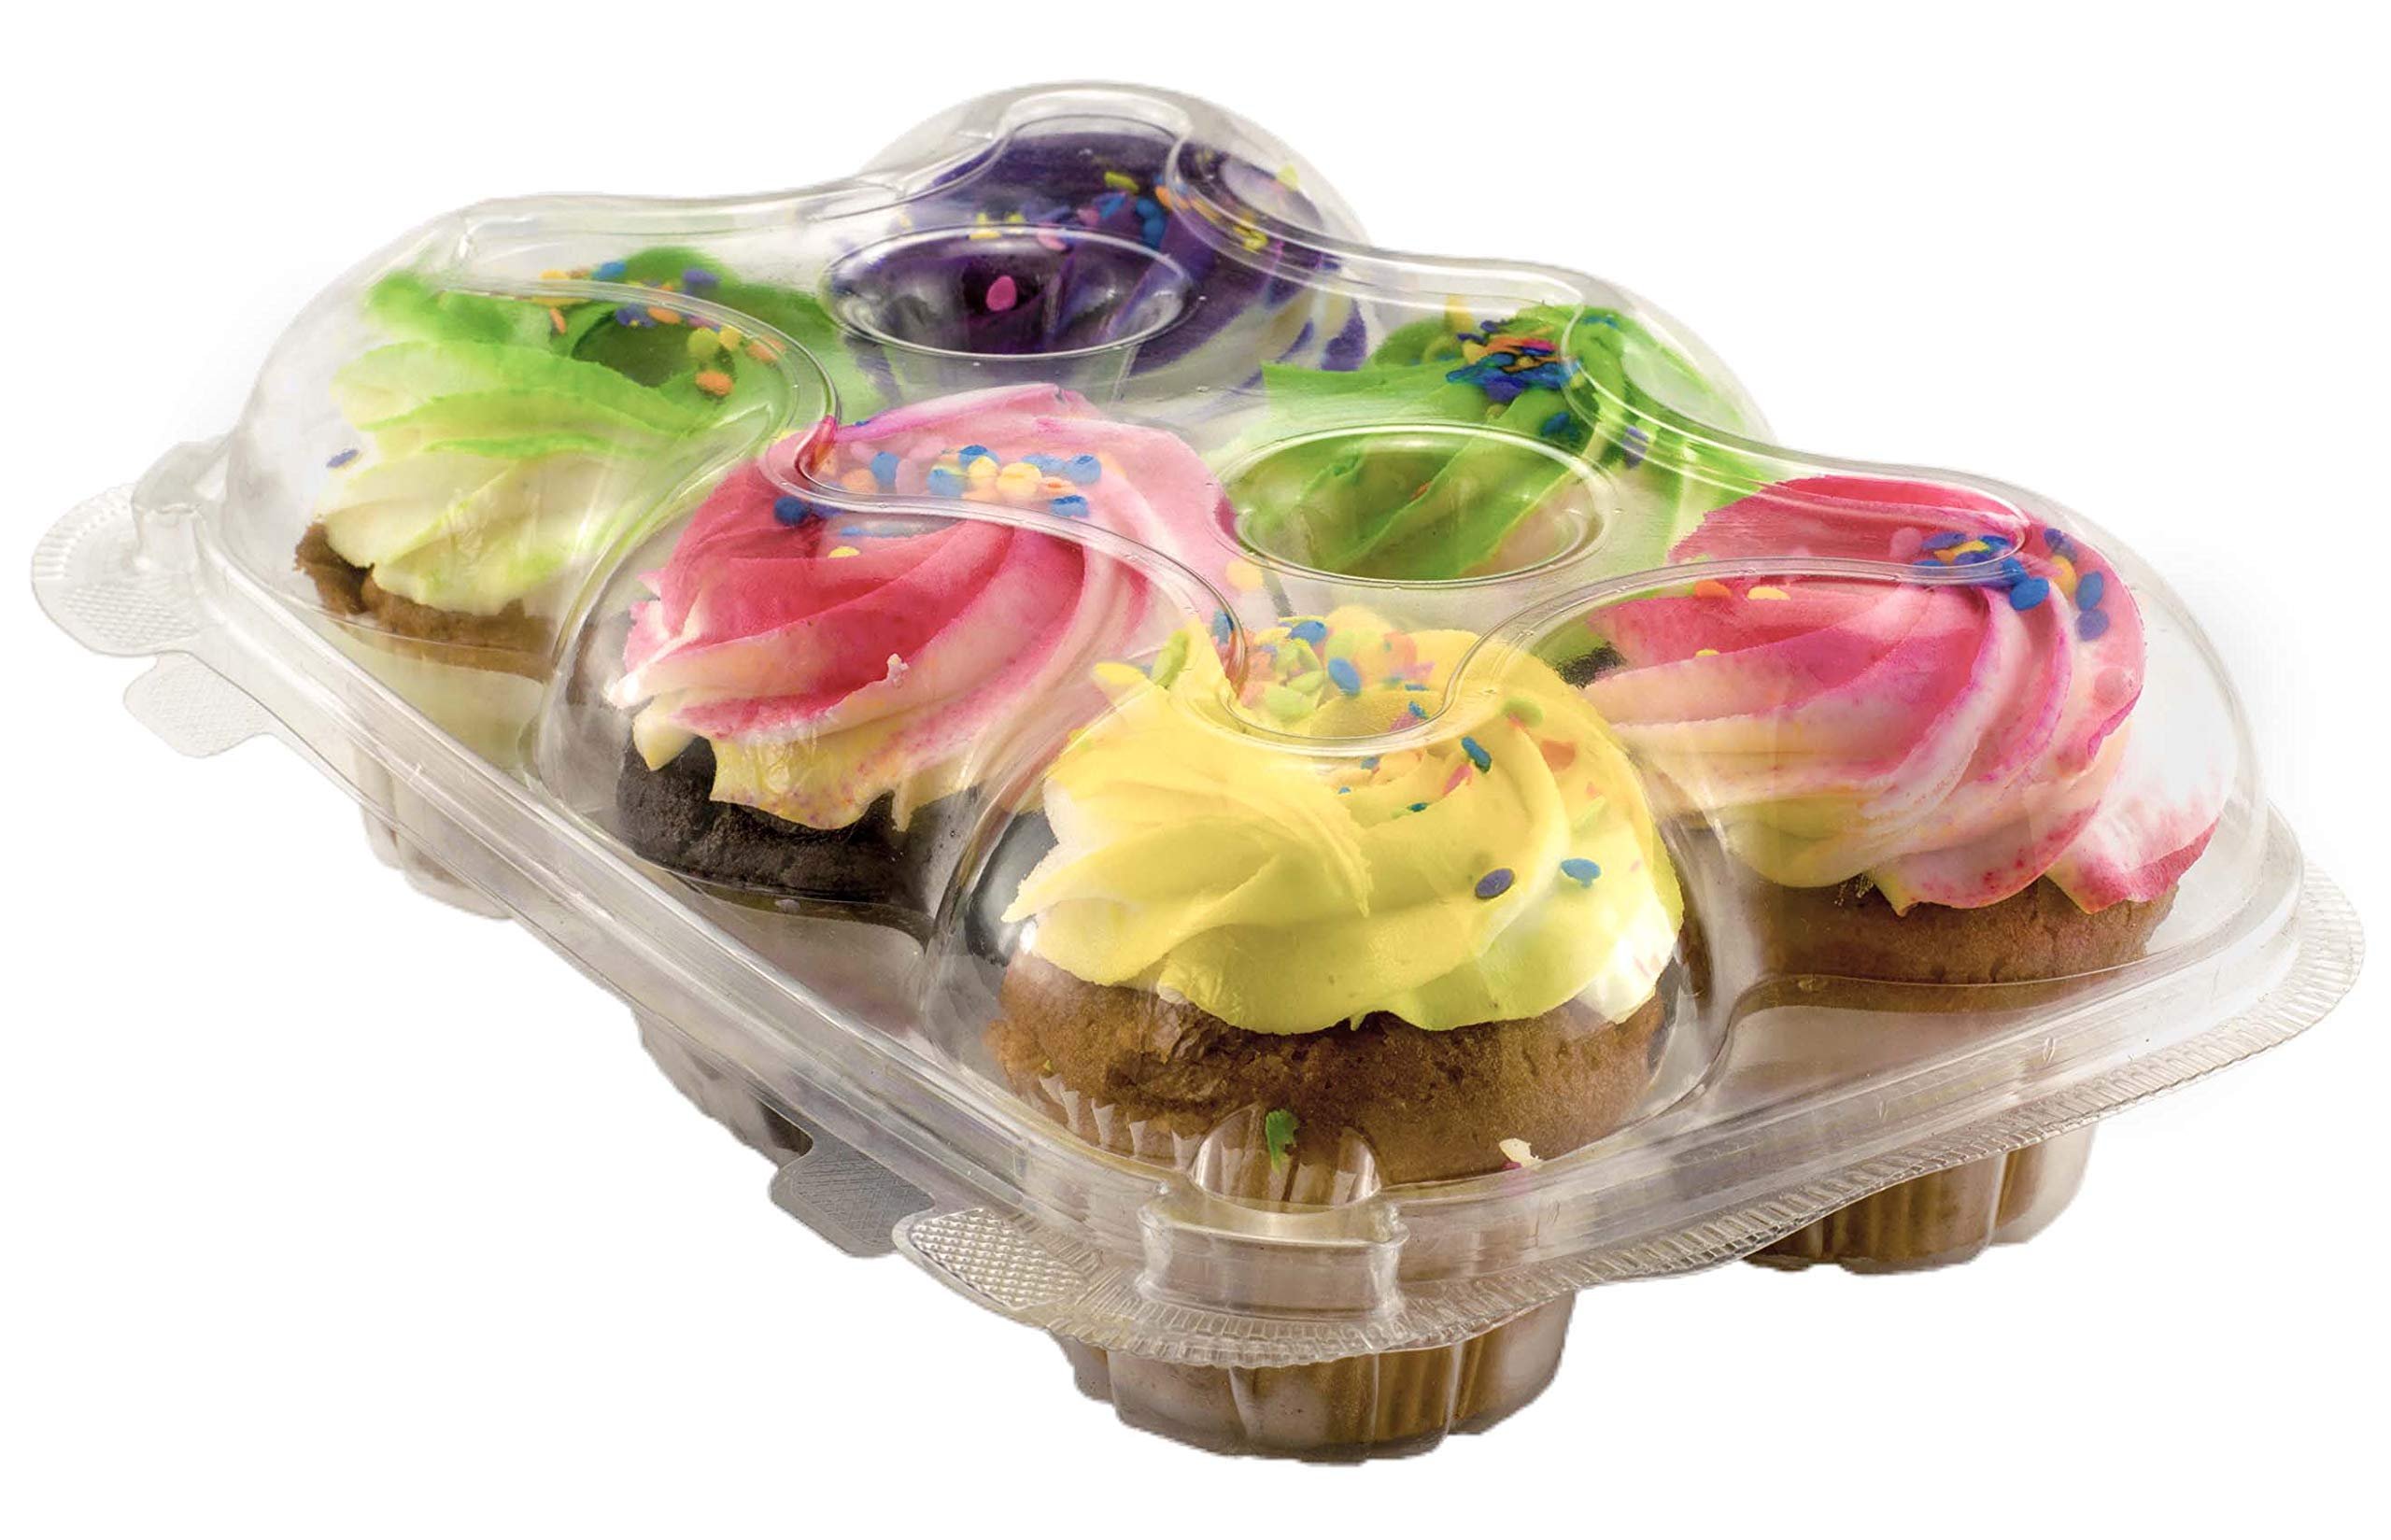 Katgely Cupcake Boxes Cupcake Containers 6 Pack Cupcake, Set of 12 by Katgely Inc